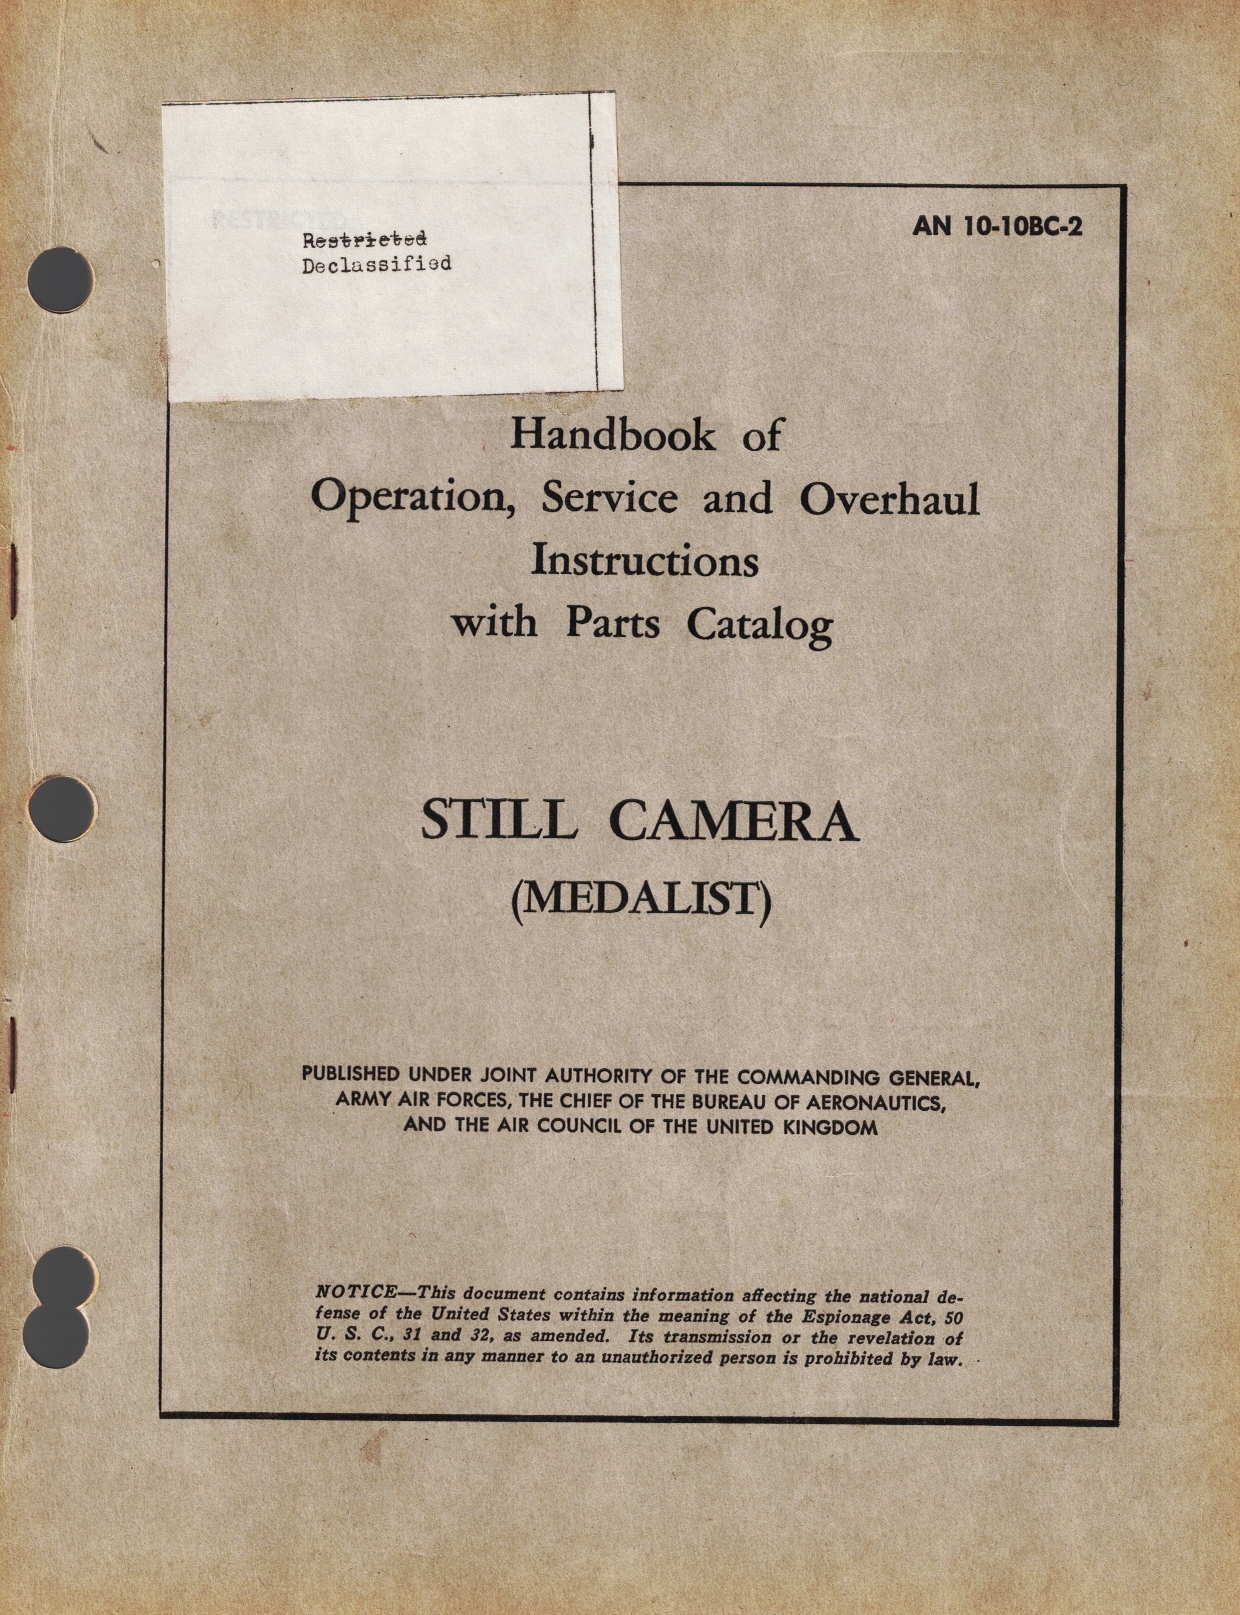 Image for Handbook of Operation, Service and Overhaul Instruction with Parts Catalog - Still Camera (Medalist) [#AN 10-10BC-2]